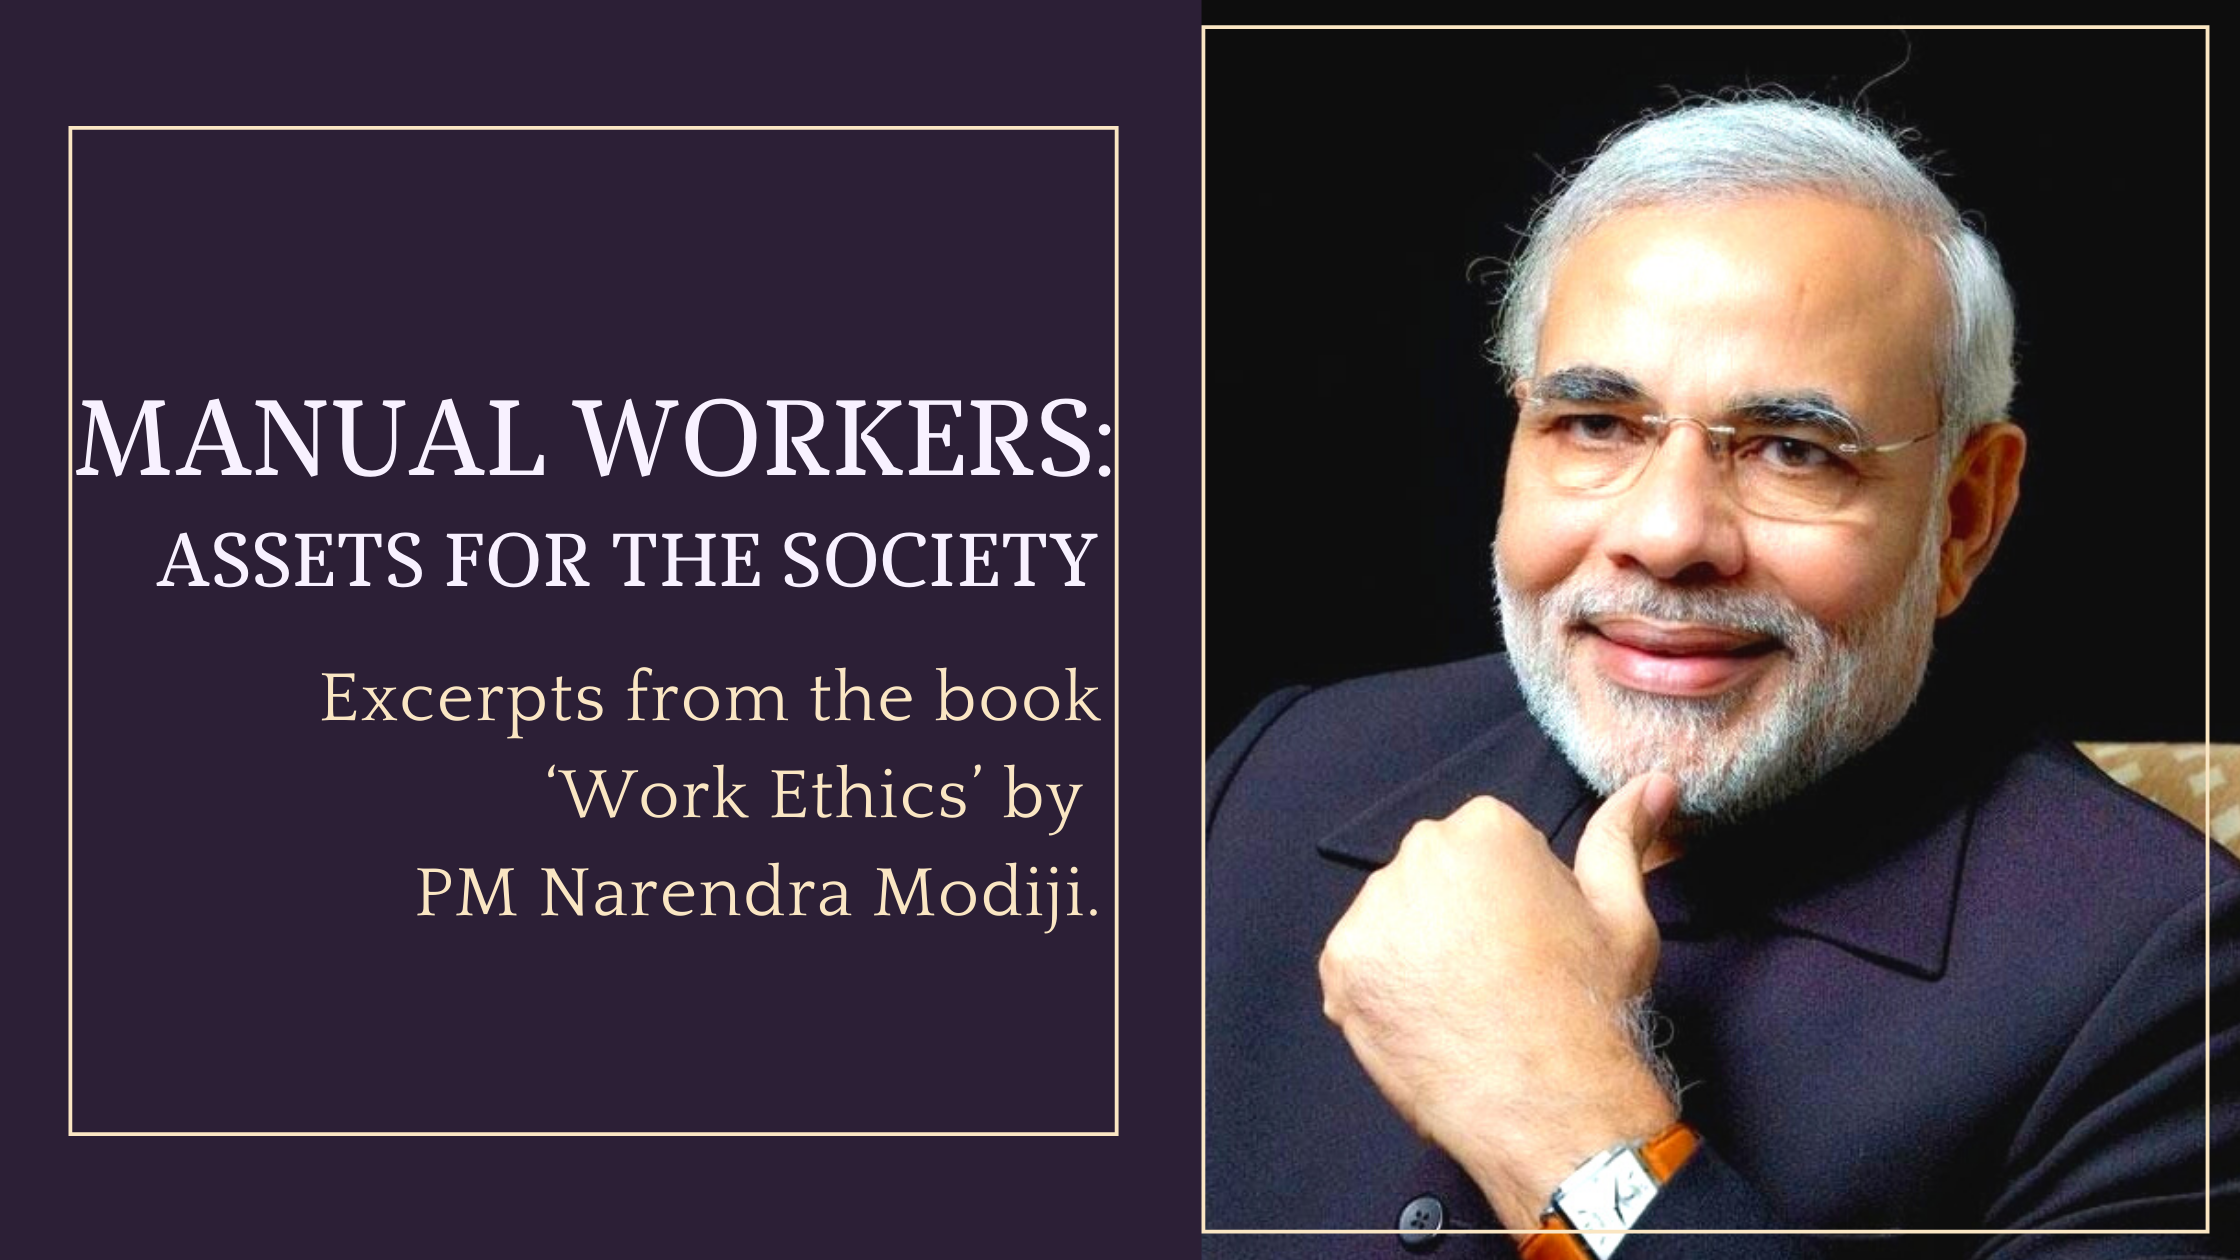 MANUAL WORKERS: ASSETS FOR THE SOCIETY